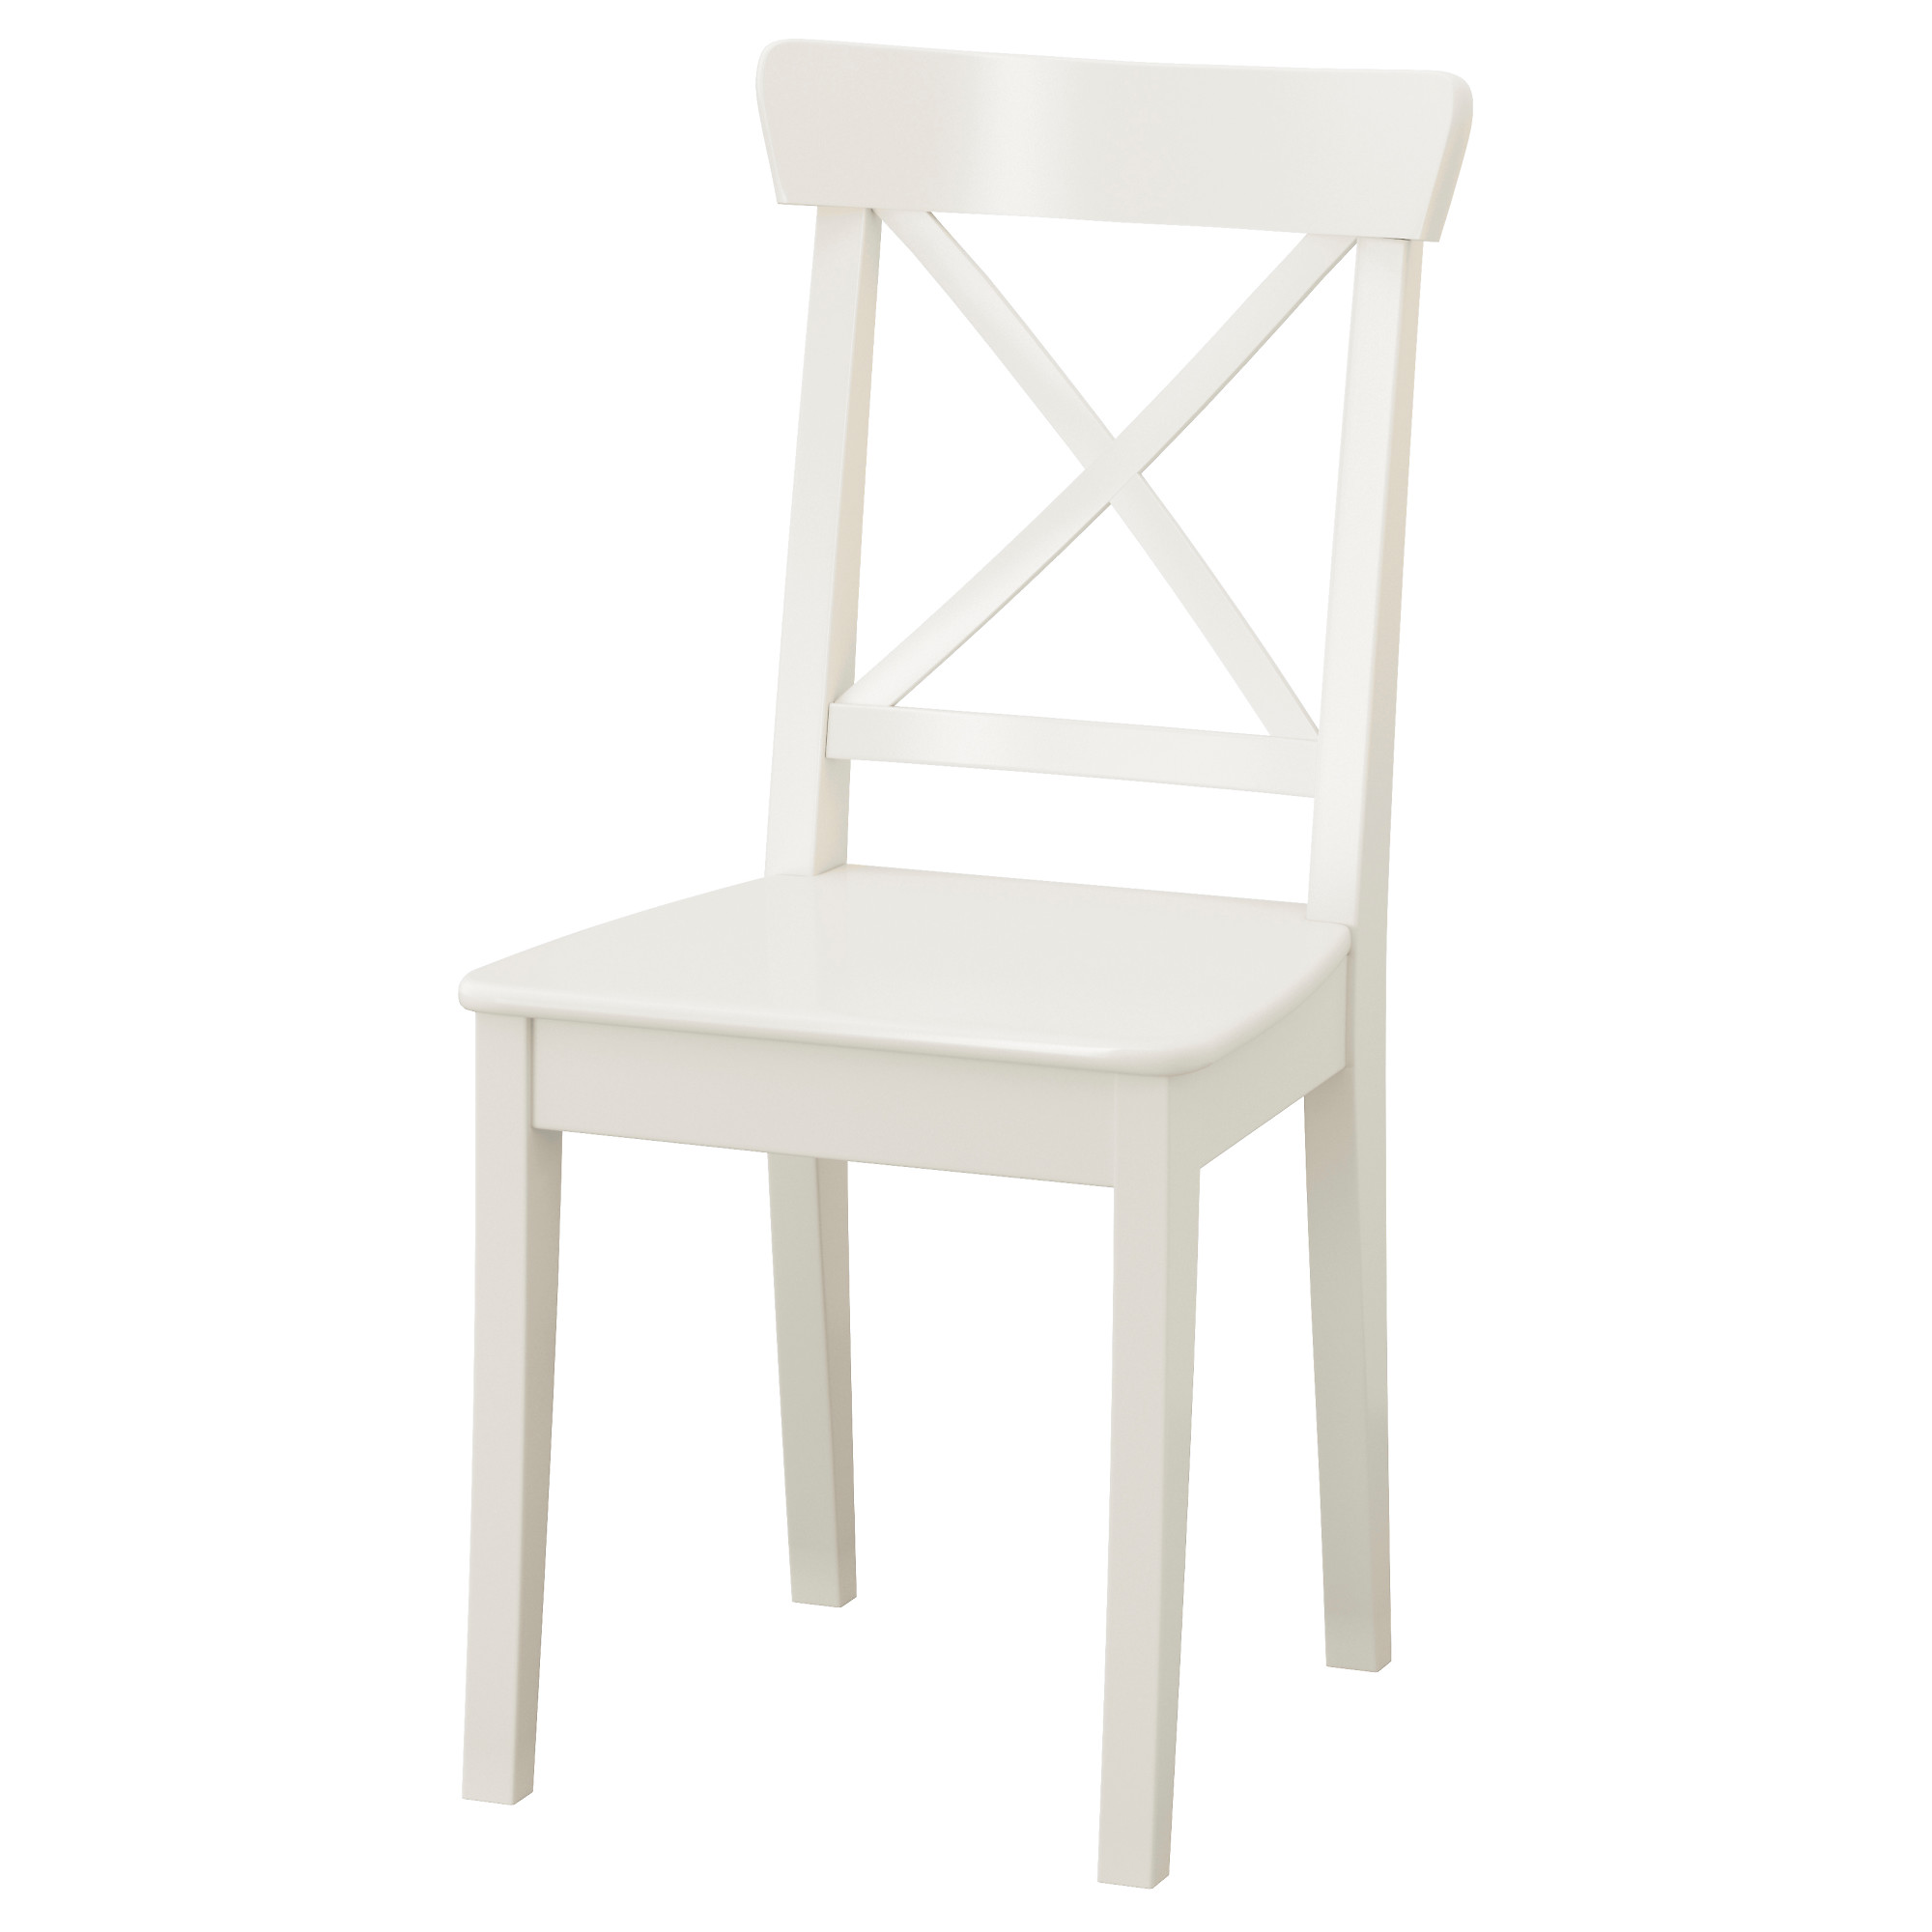 white dining chairs ingolf chair, white tested for: 243 lb width: 16 7/8  MBMCBPQ